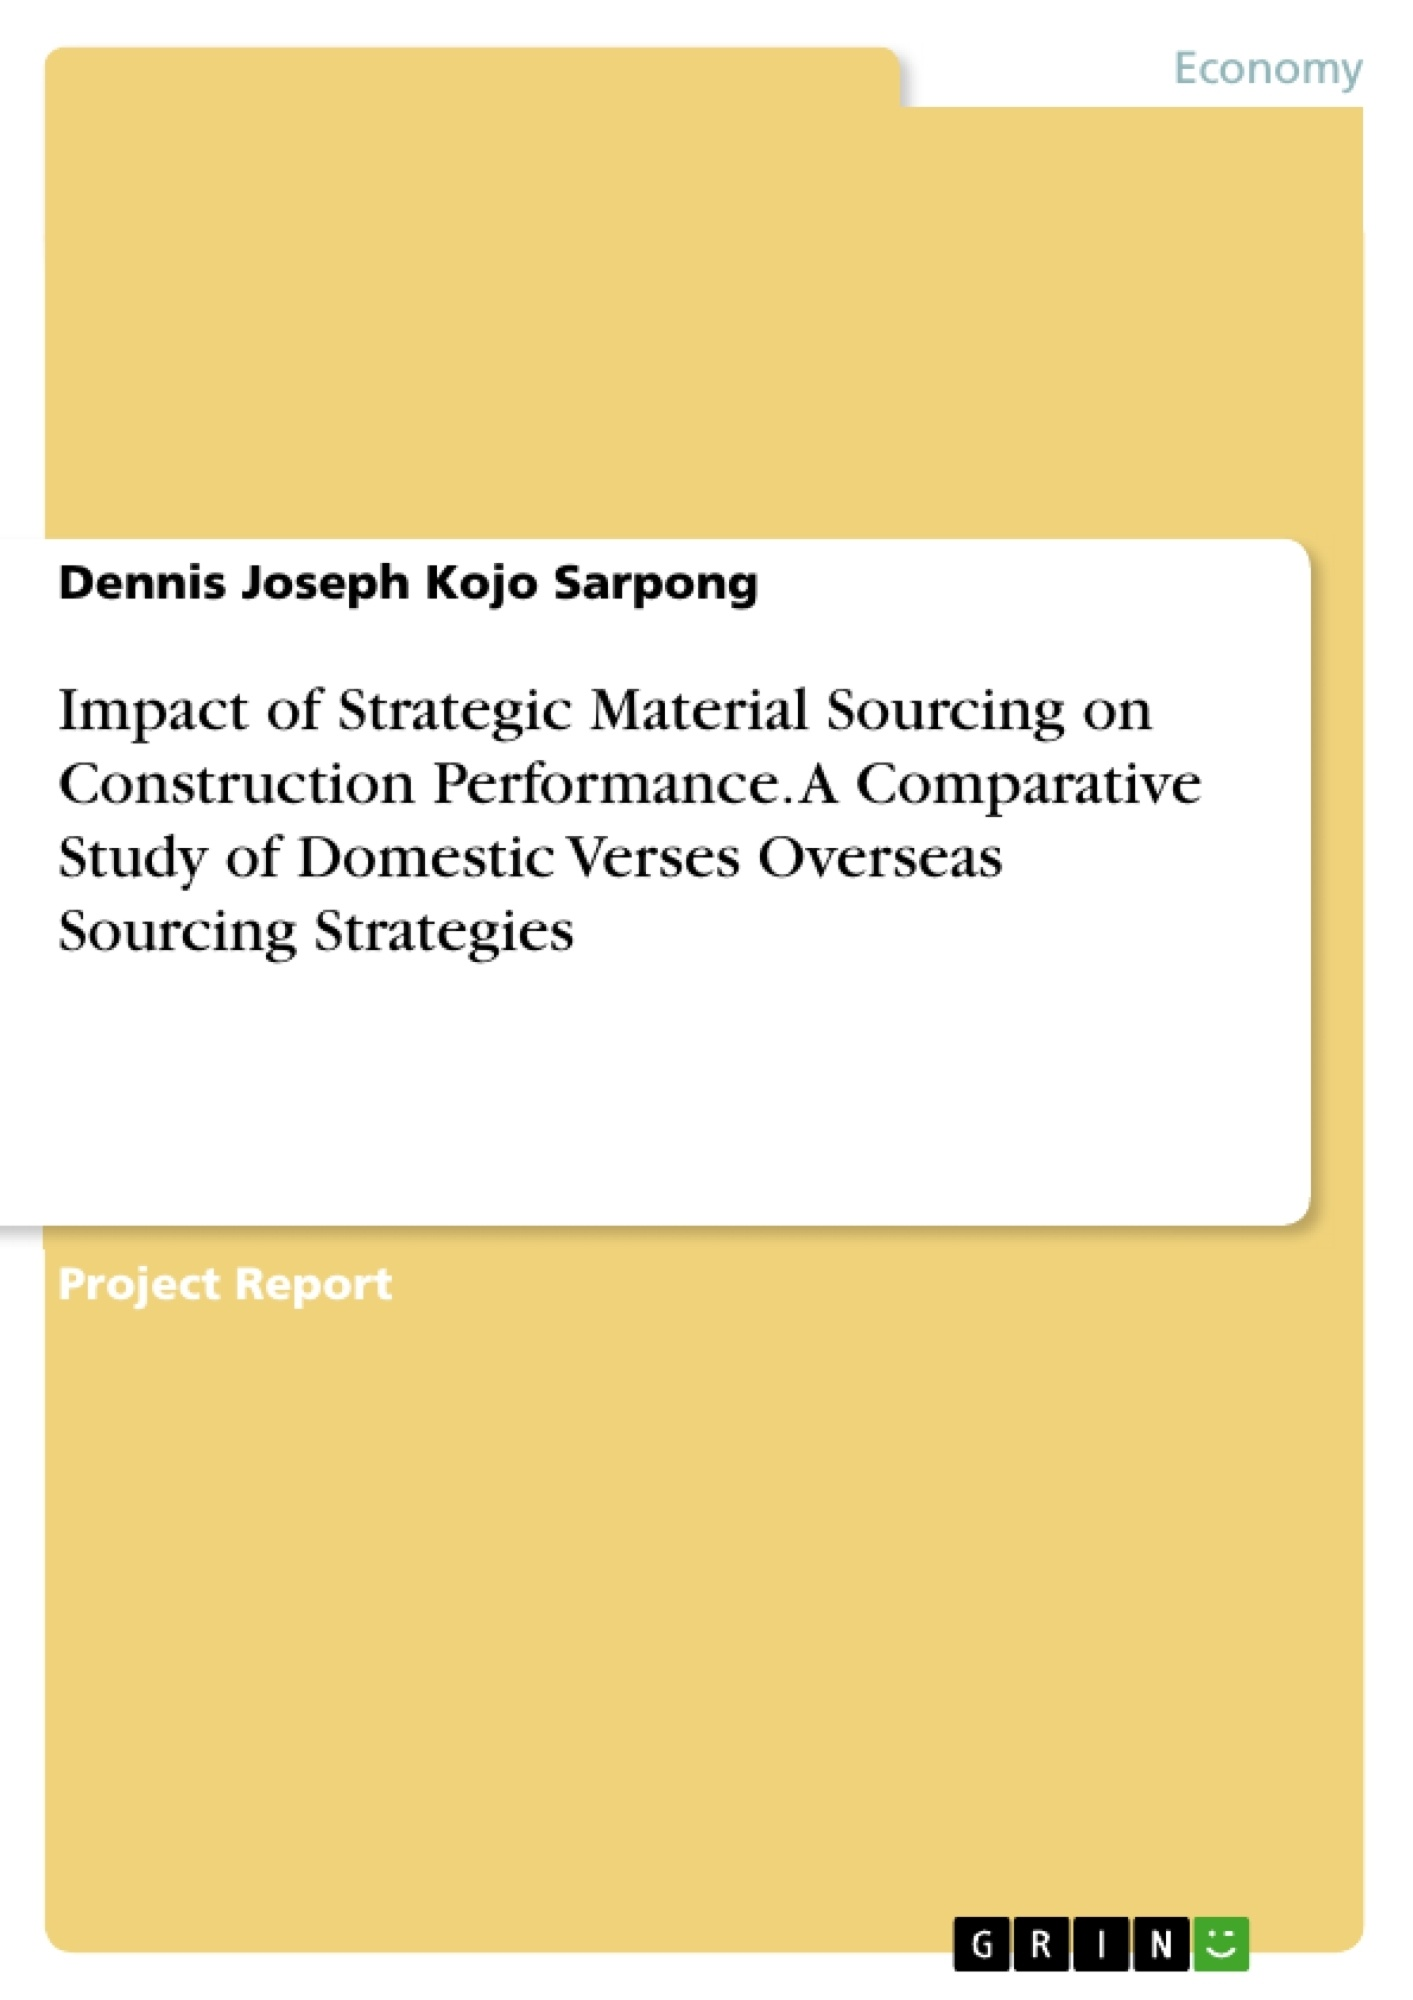 Title: Impact of Strategic Material Sourcing on Construction Performance. A Comparative Study of Domestic Verses Overseas Sourcing Strategies